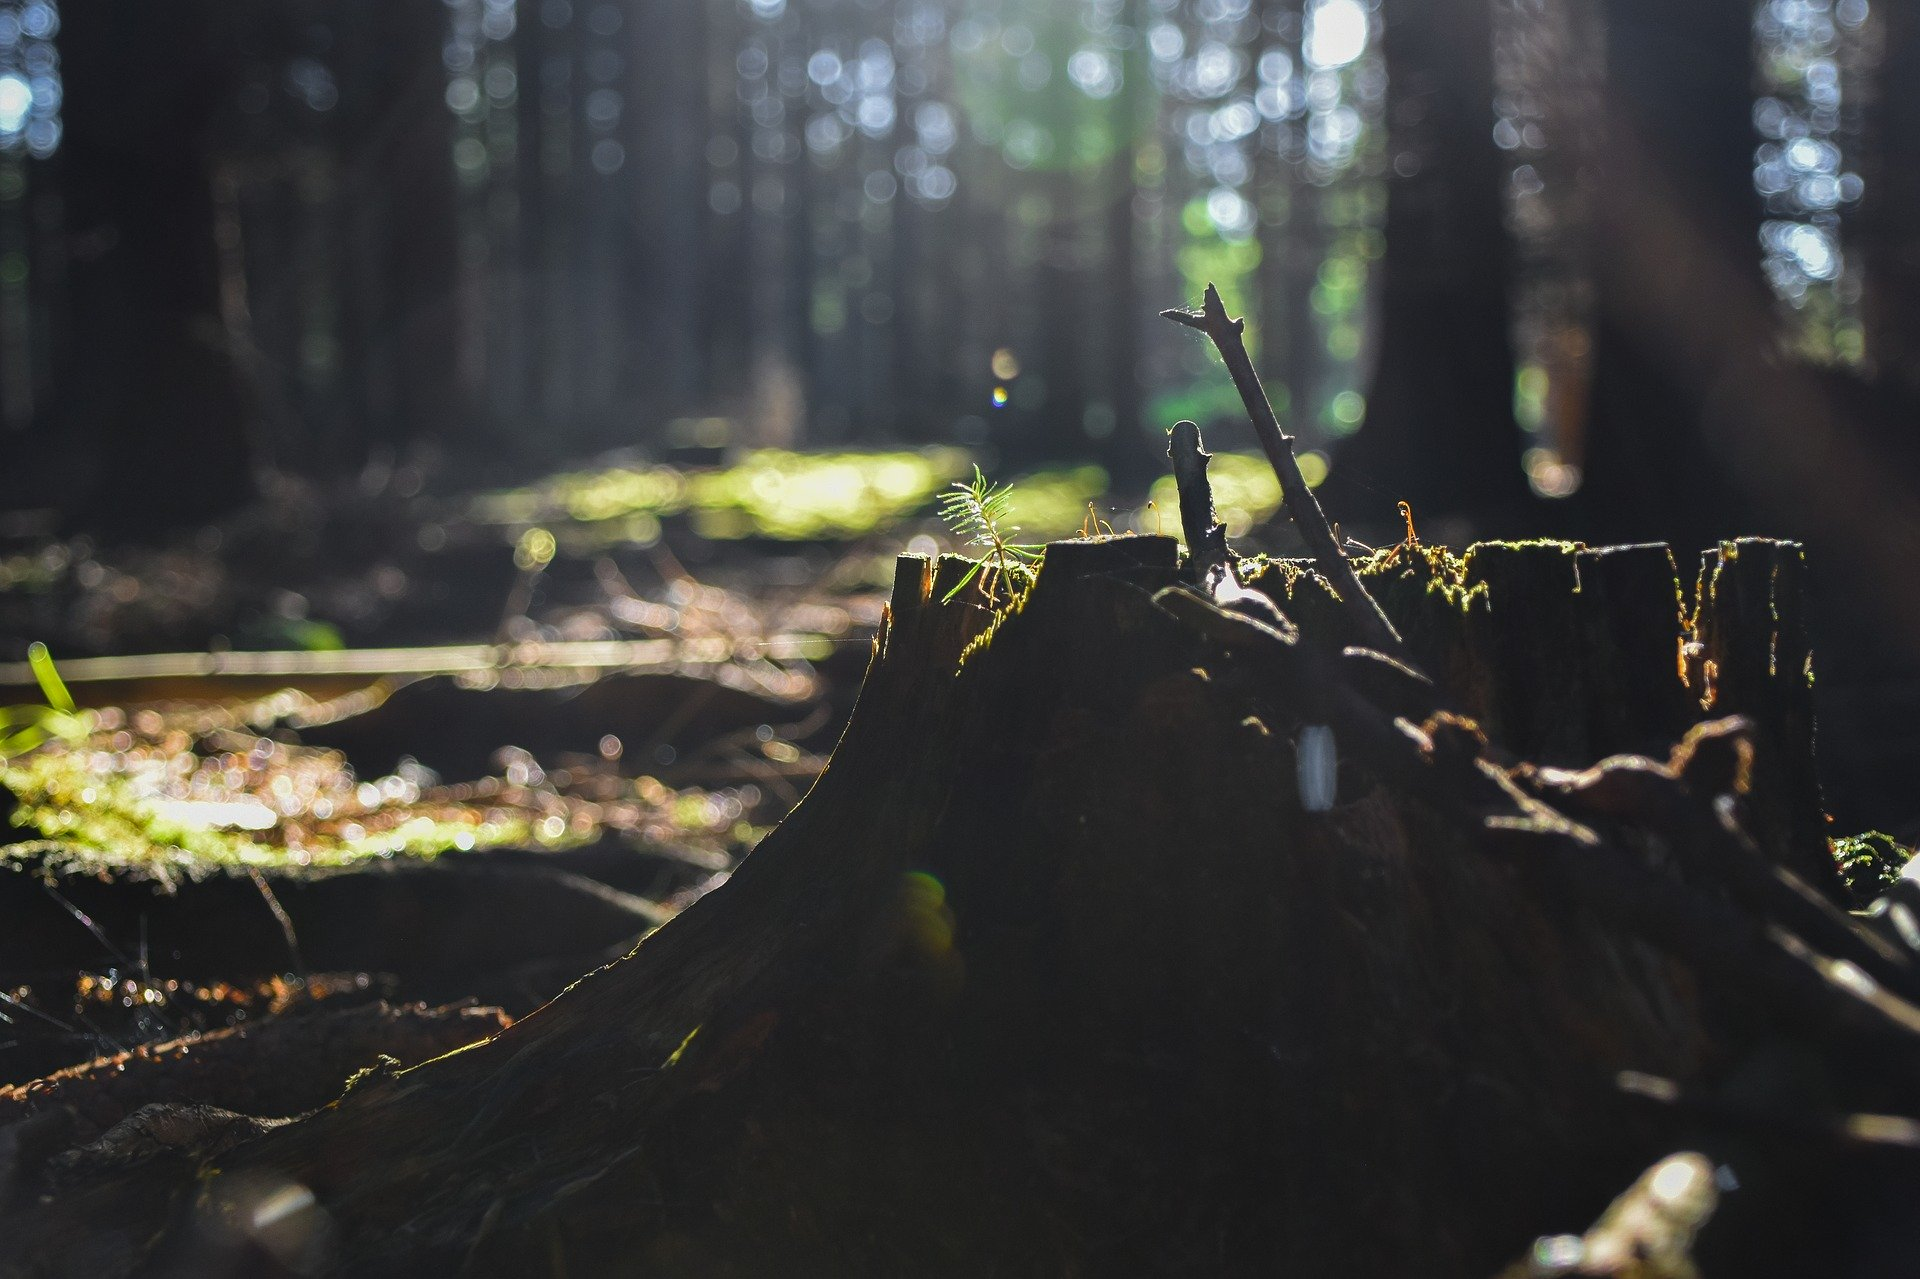 Pixabay, climate crisis, forest, stump